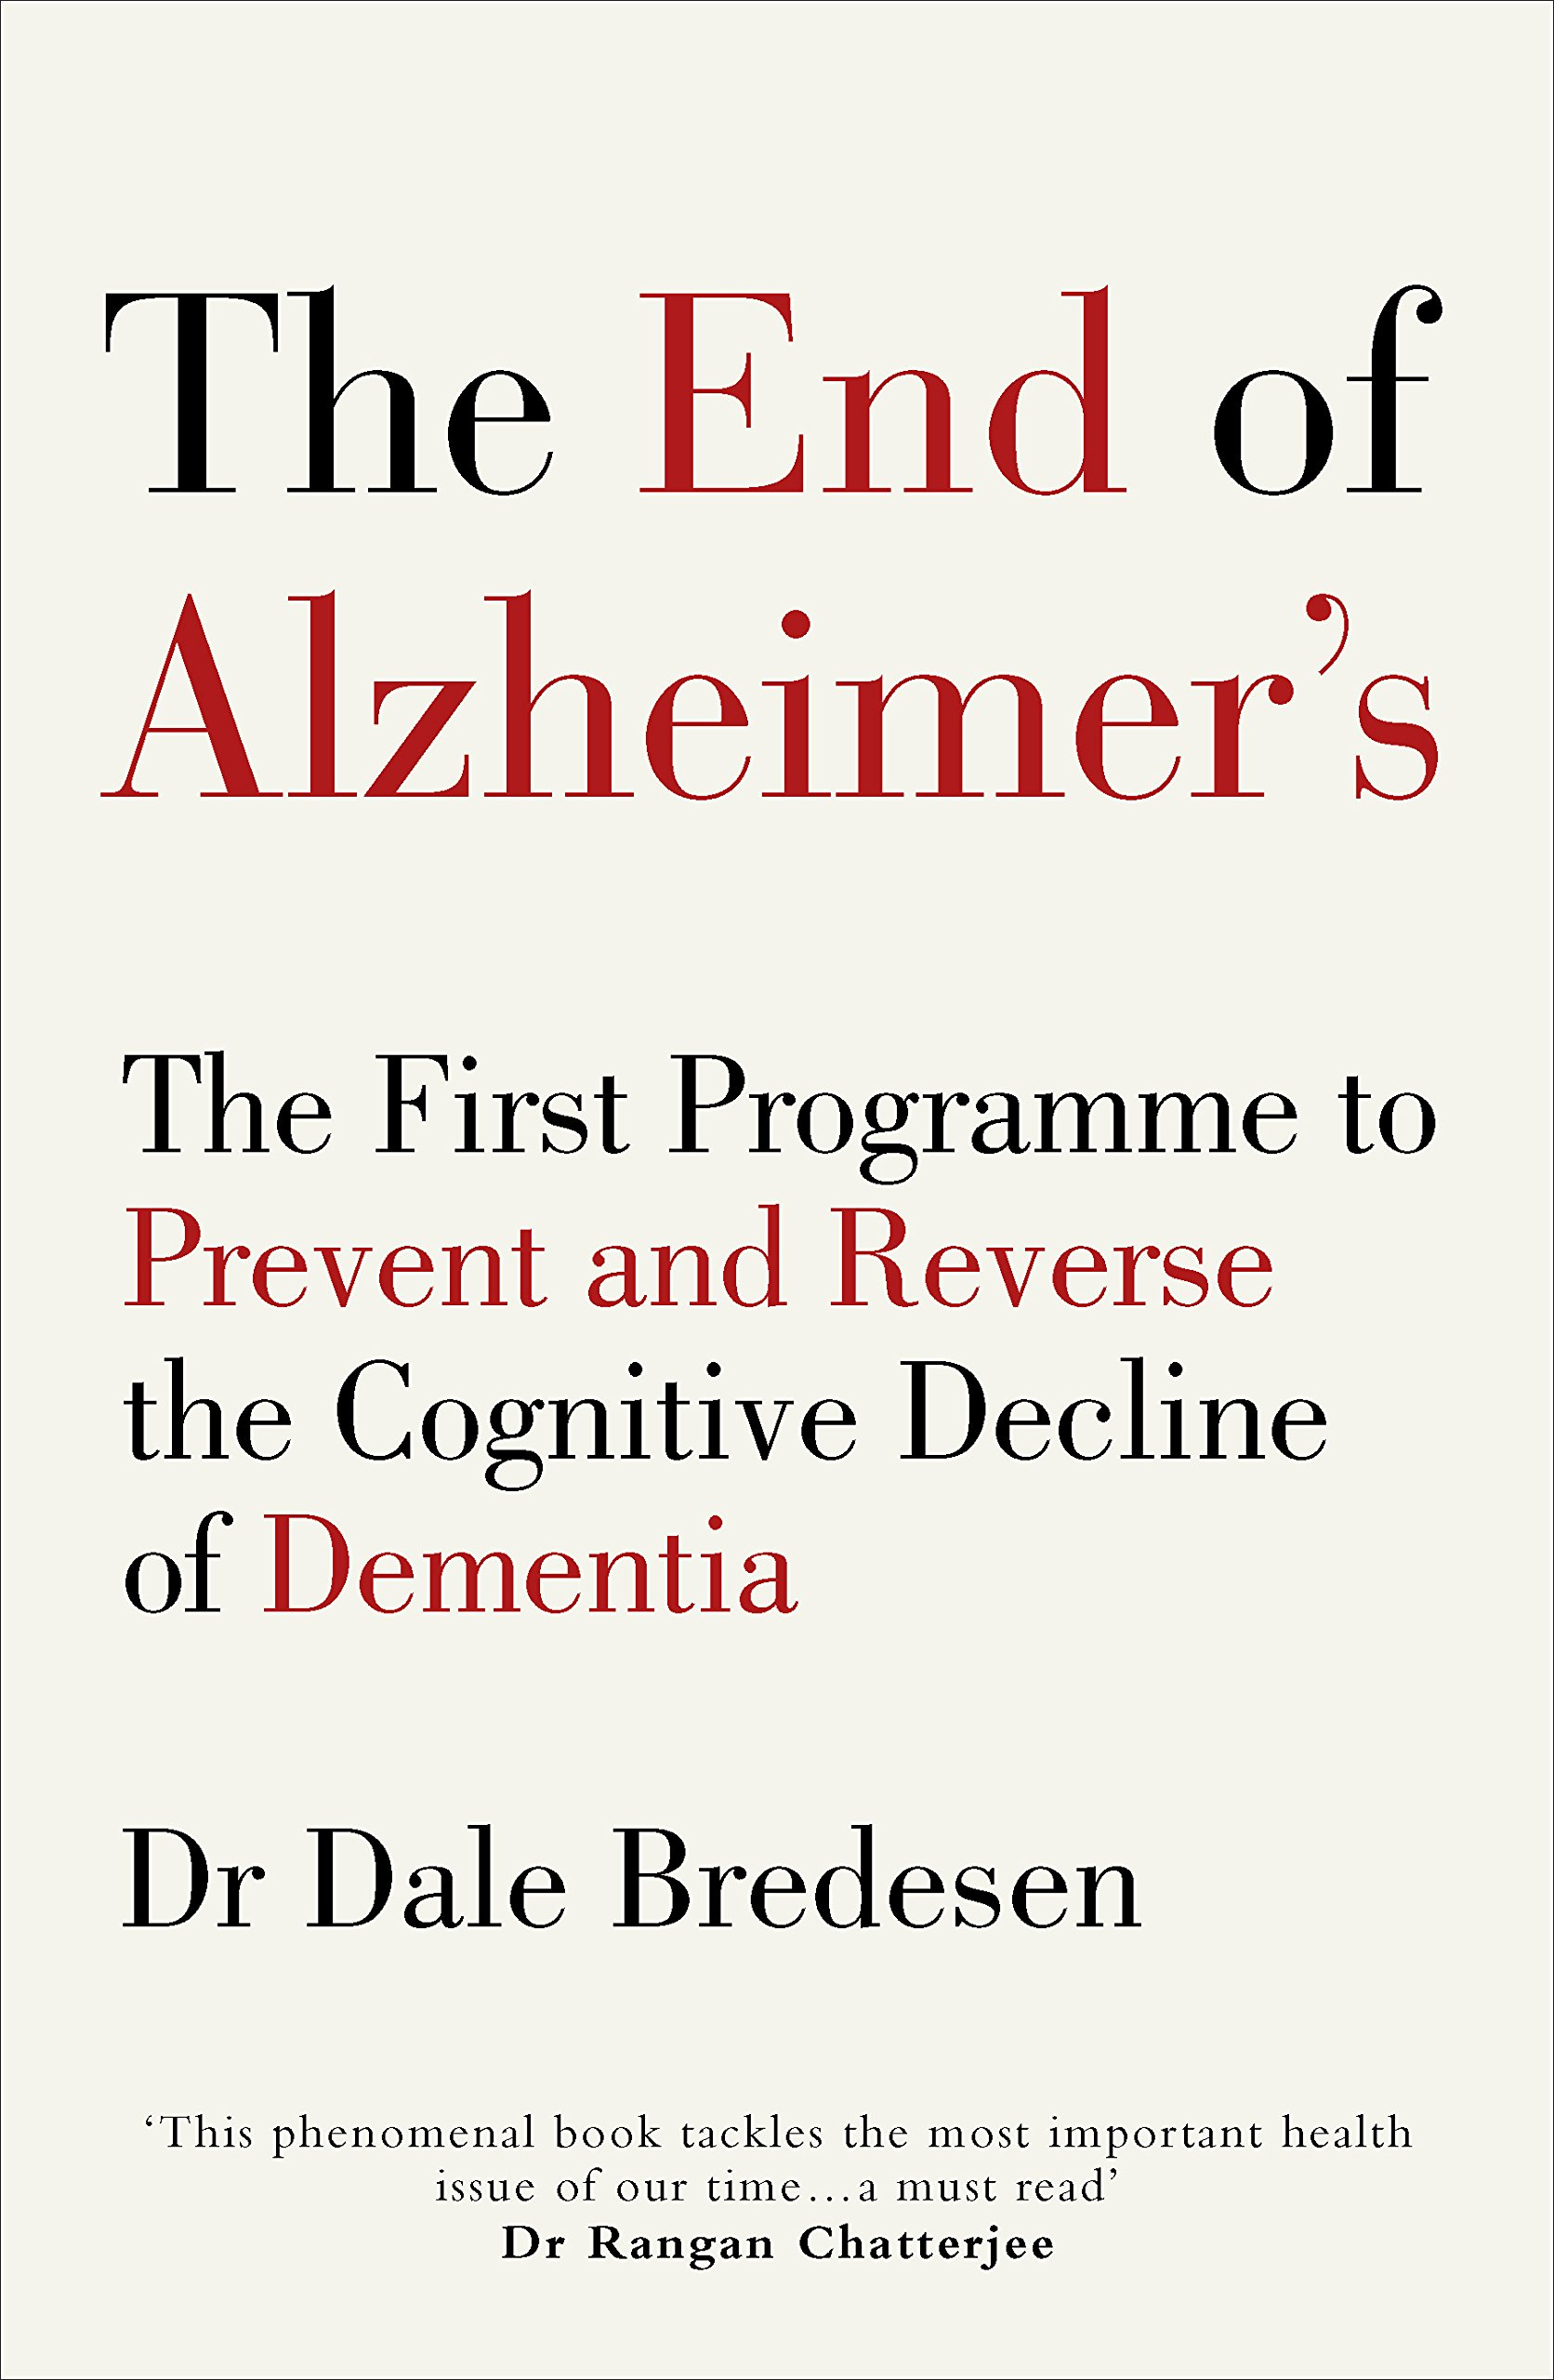 The End of Alzheimer's: The First Programme to Prevent and Reverse the Cognitive Decline of Dementia Paperback – 22 Aug 2017